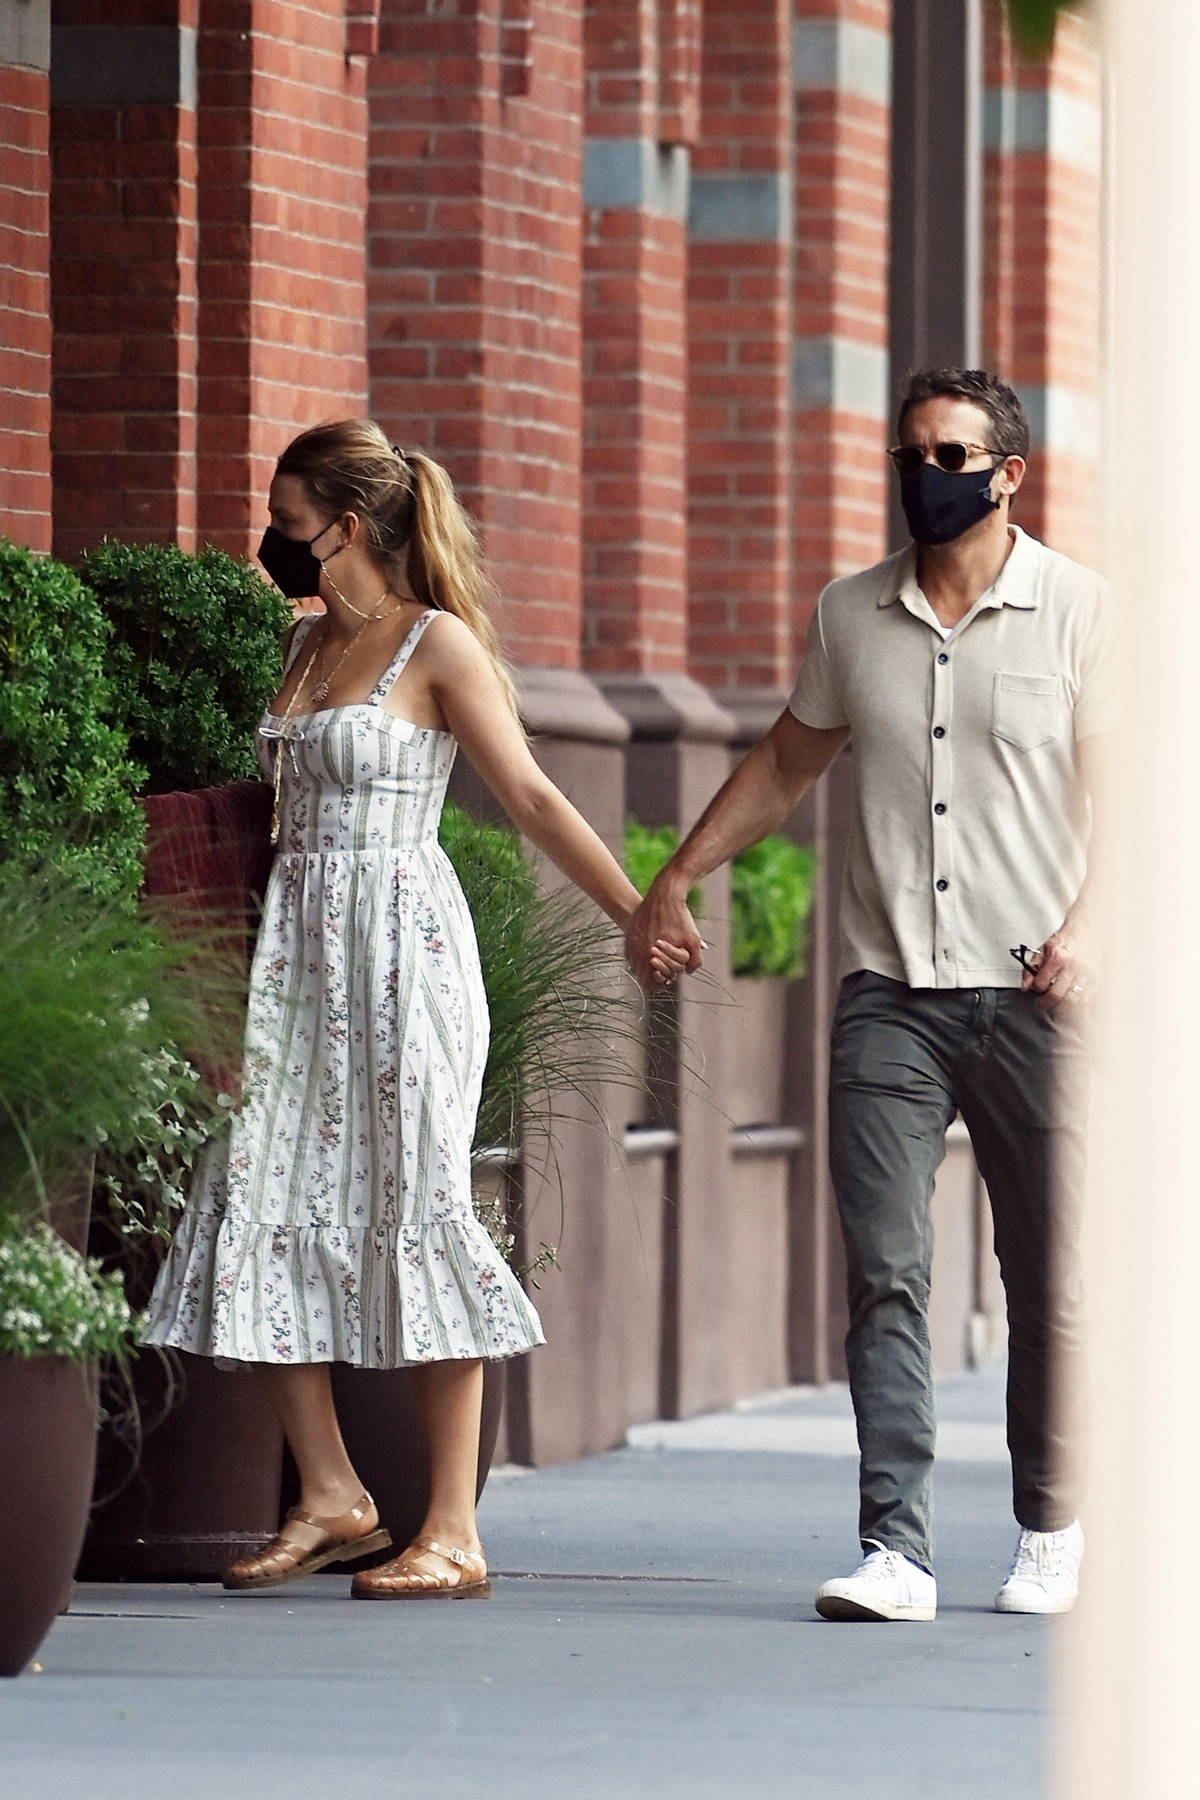 Blake Lively and Ryan Reynolds hold hands as they arrive back after dinner in New York City